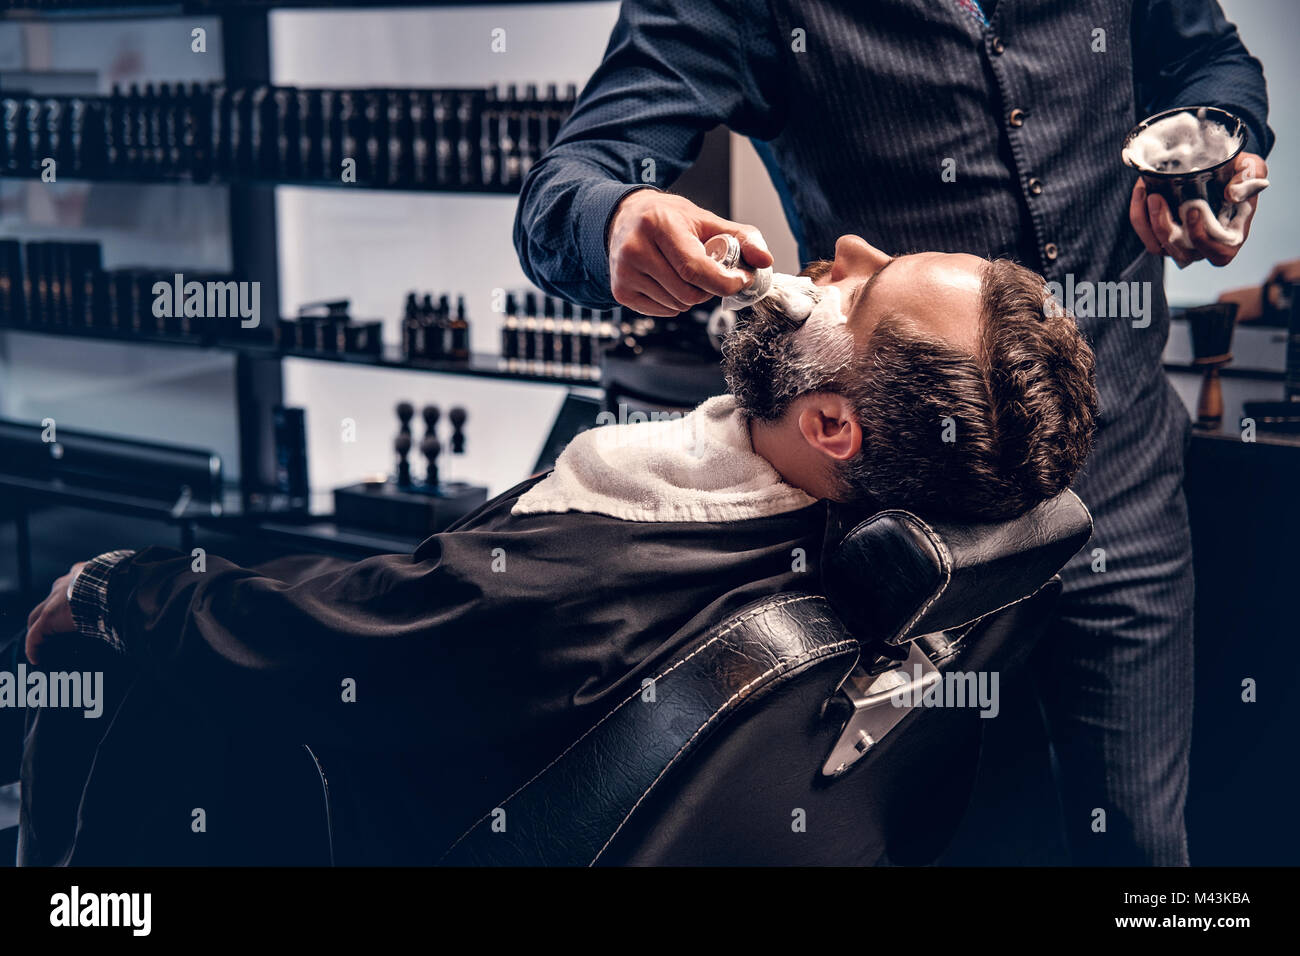 Barber applies shaving foam - Stock Image